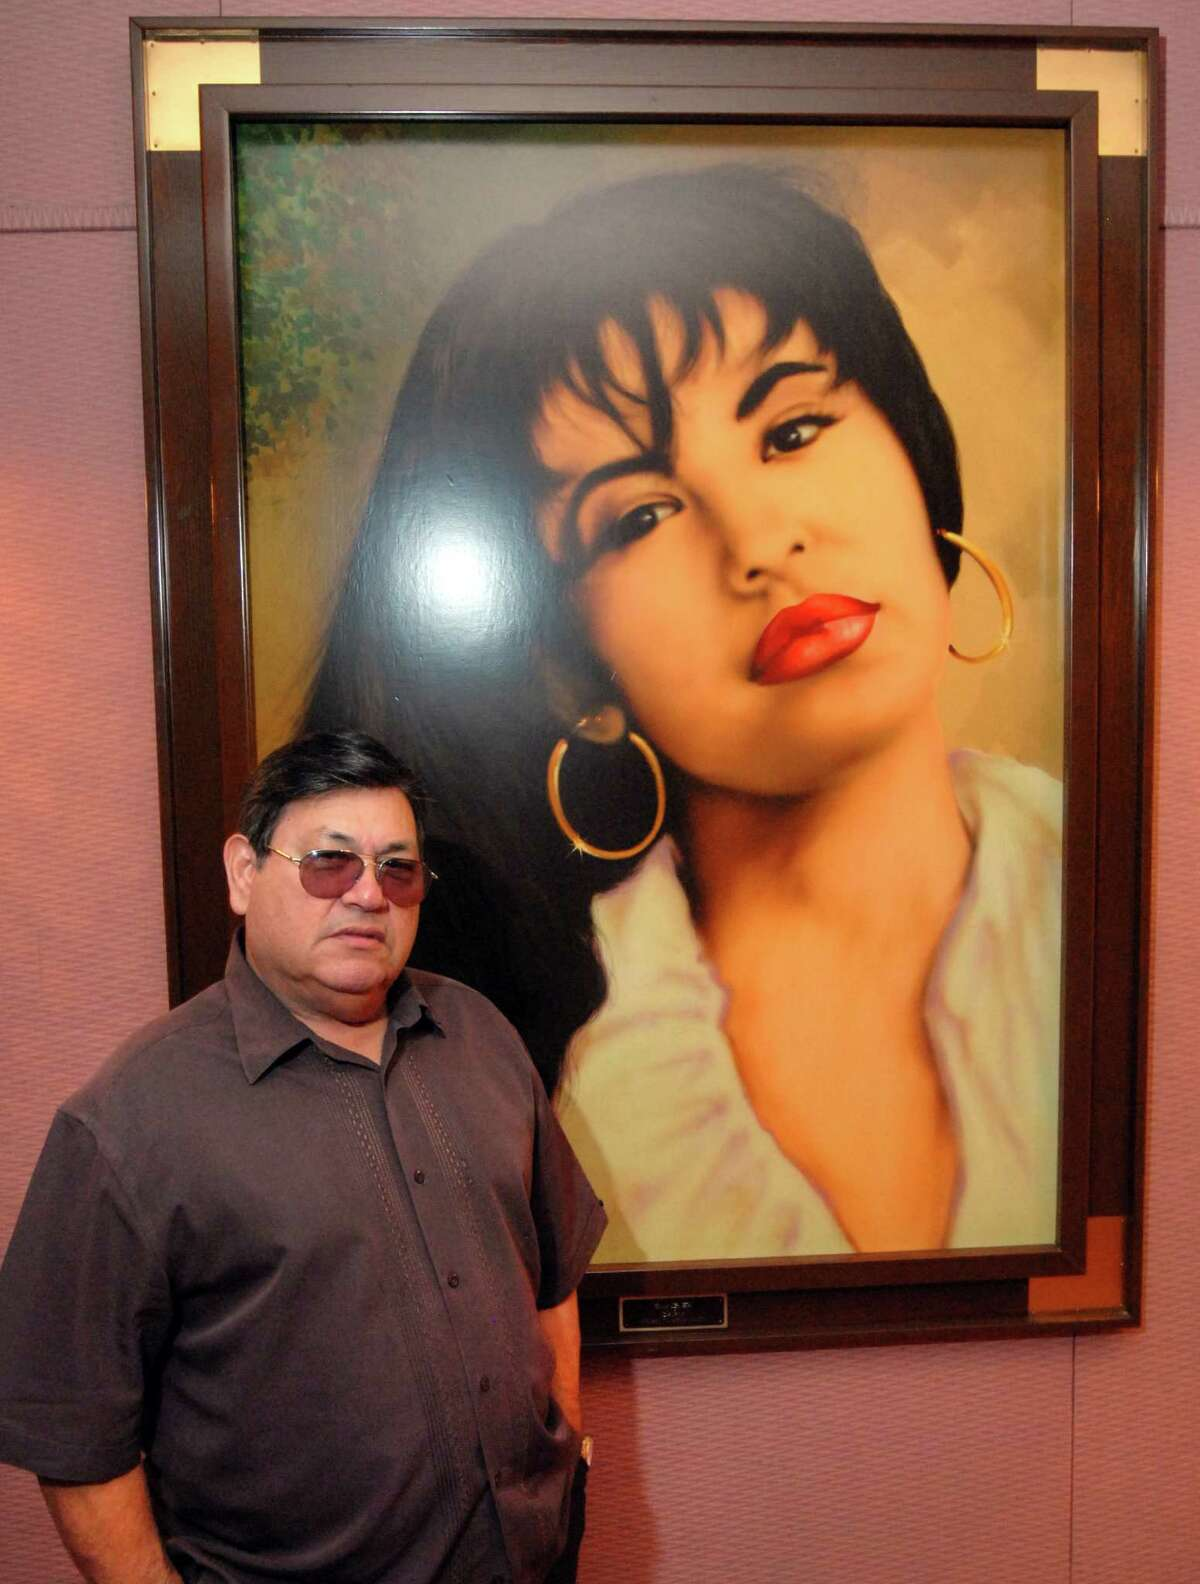 """FILE - In this June 24, 2011 file photo, Abraham Quintanilla, the father of the late singer Selena, poses in front of an airbrush portrait of her, a gift from a fan after the Tejano star's death, in a Q Productions' studio, in Corpus Christi, Texas, where Selena made her last recording. Selena?'s family is working with Acrovit, a tech company based in San Diego, in the creation of a digital clone of the beloved singer that would allow her fans to see her singing ?""""live"""" with Los Dinos. (AP Photo/Paul Iverson, File) ORG XMIT: XLAT121"""